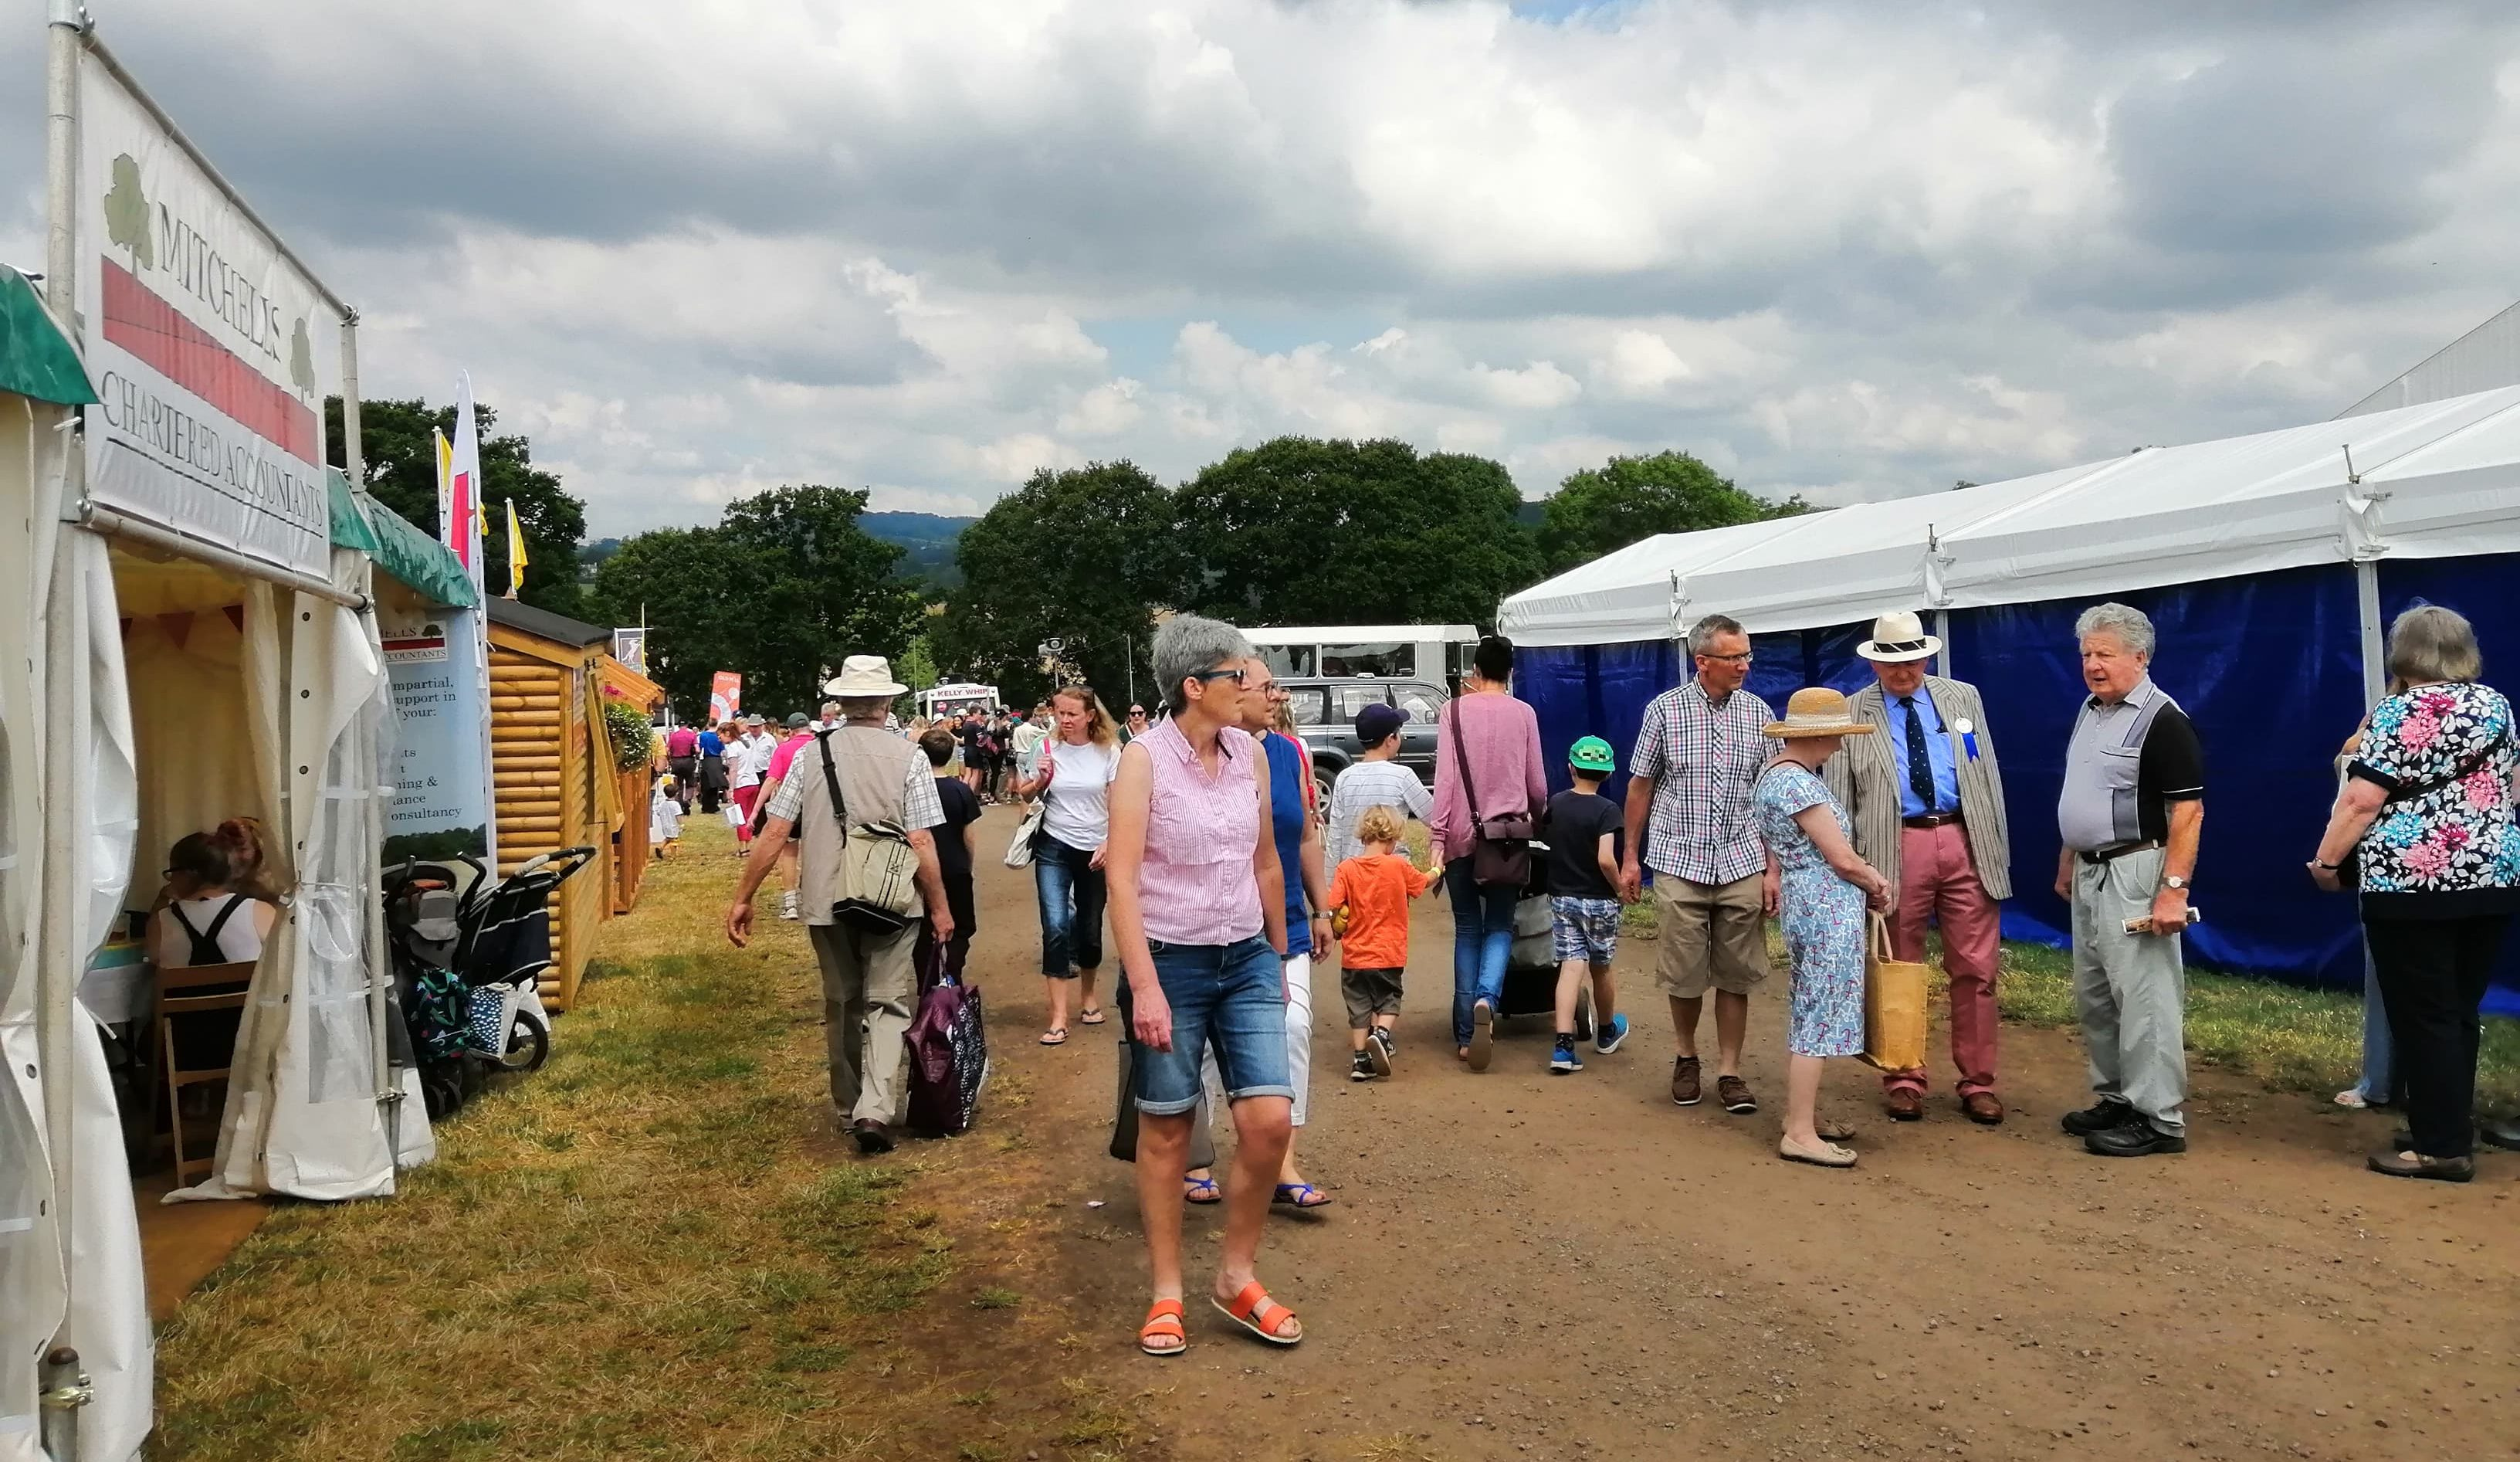 PICTURES: Honiton Show 2019 - East Devon News